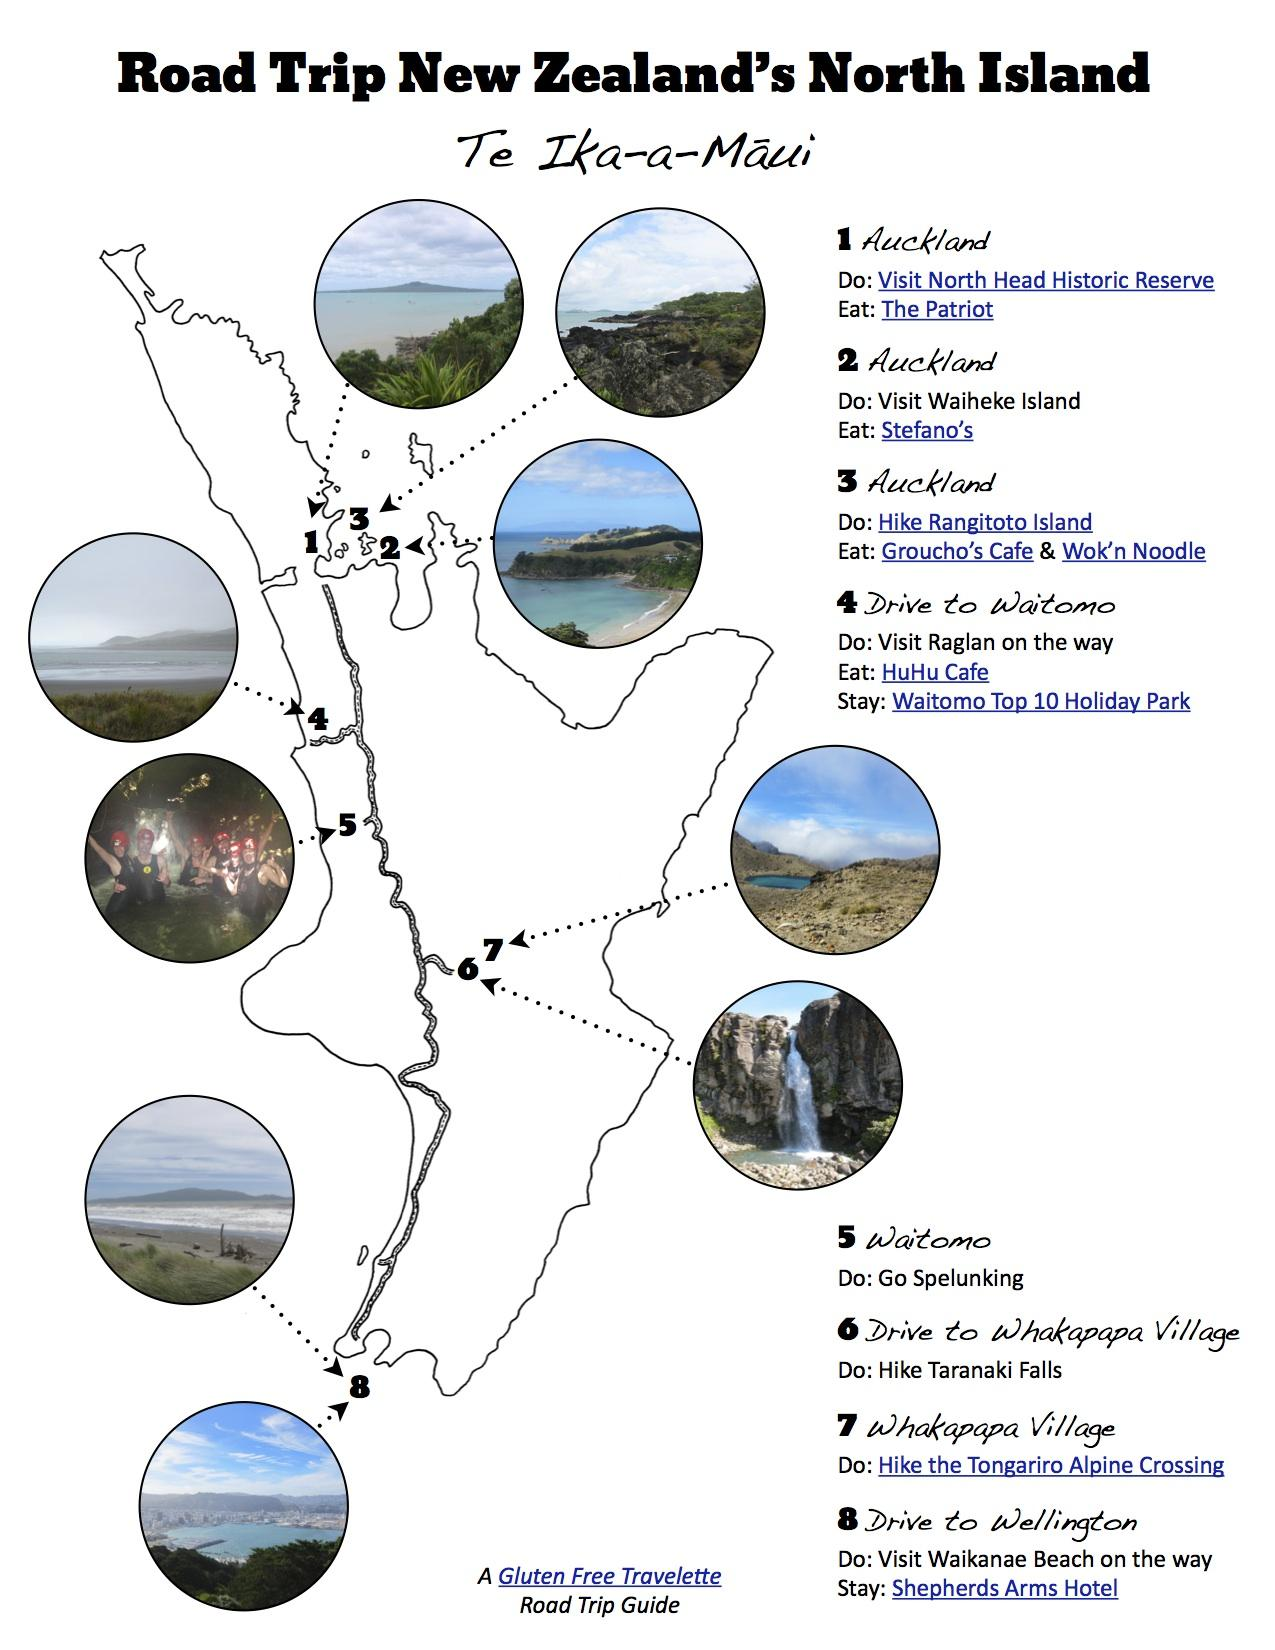 Road Trip Guide to New Zealand - image 6 - student project